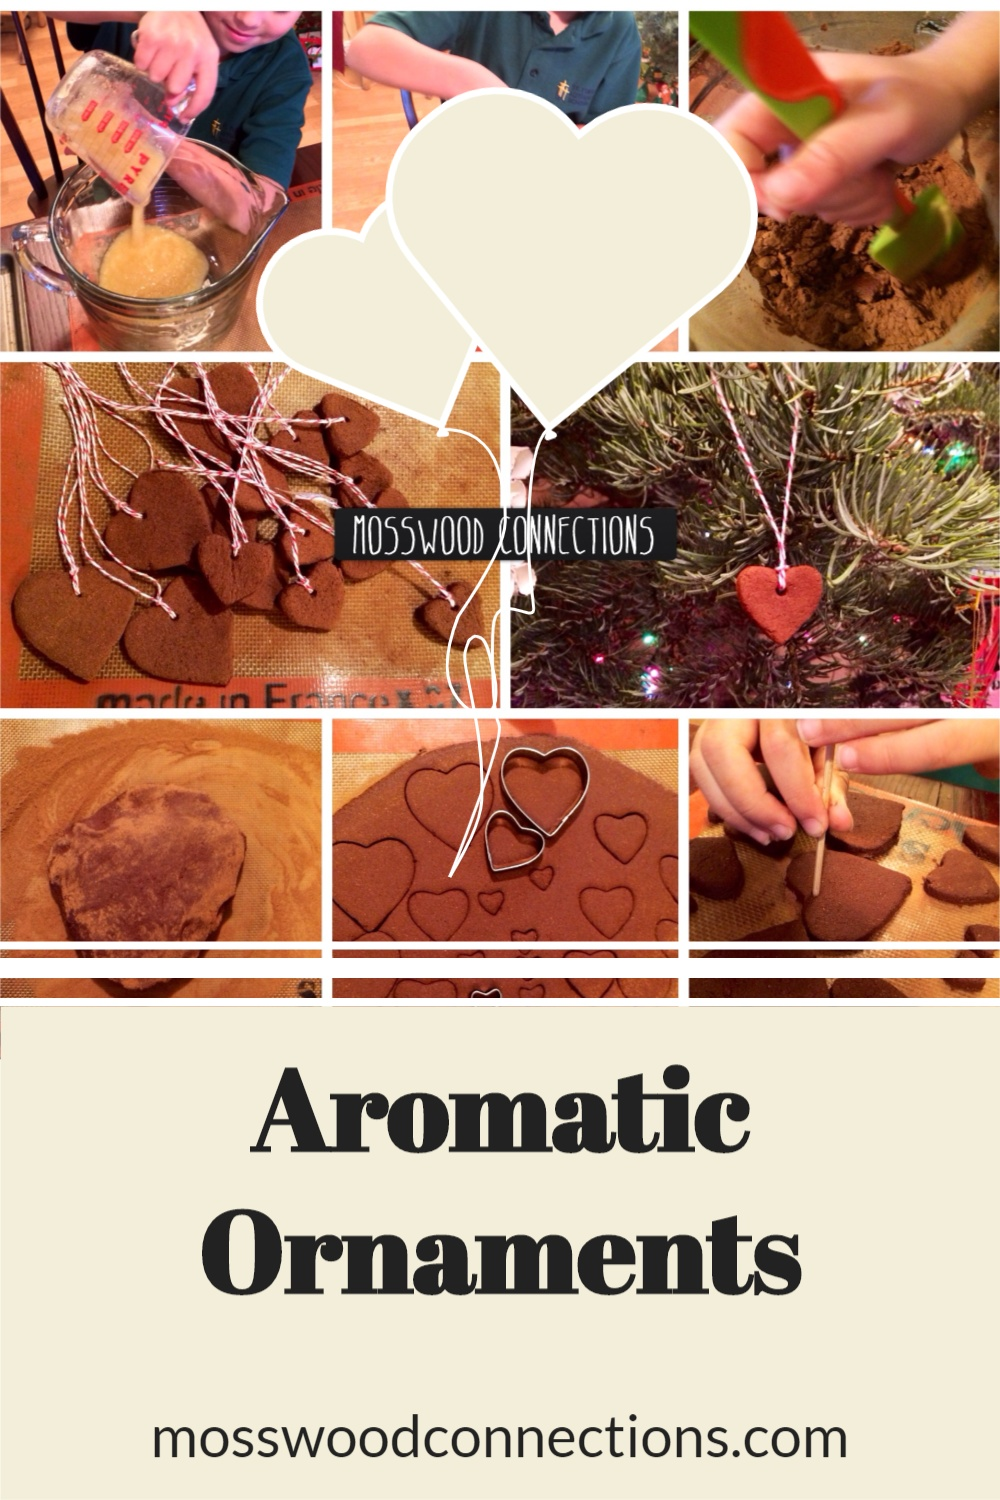 Aromatic Ornaments project is a sensory experience for the hands and the nose. #mosswoodconnections #holidays #ornaments  #sensory